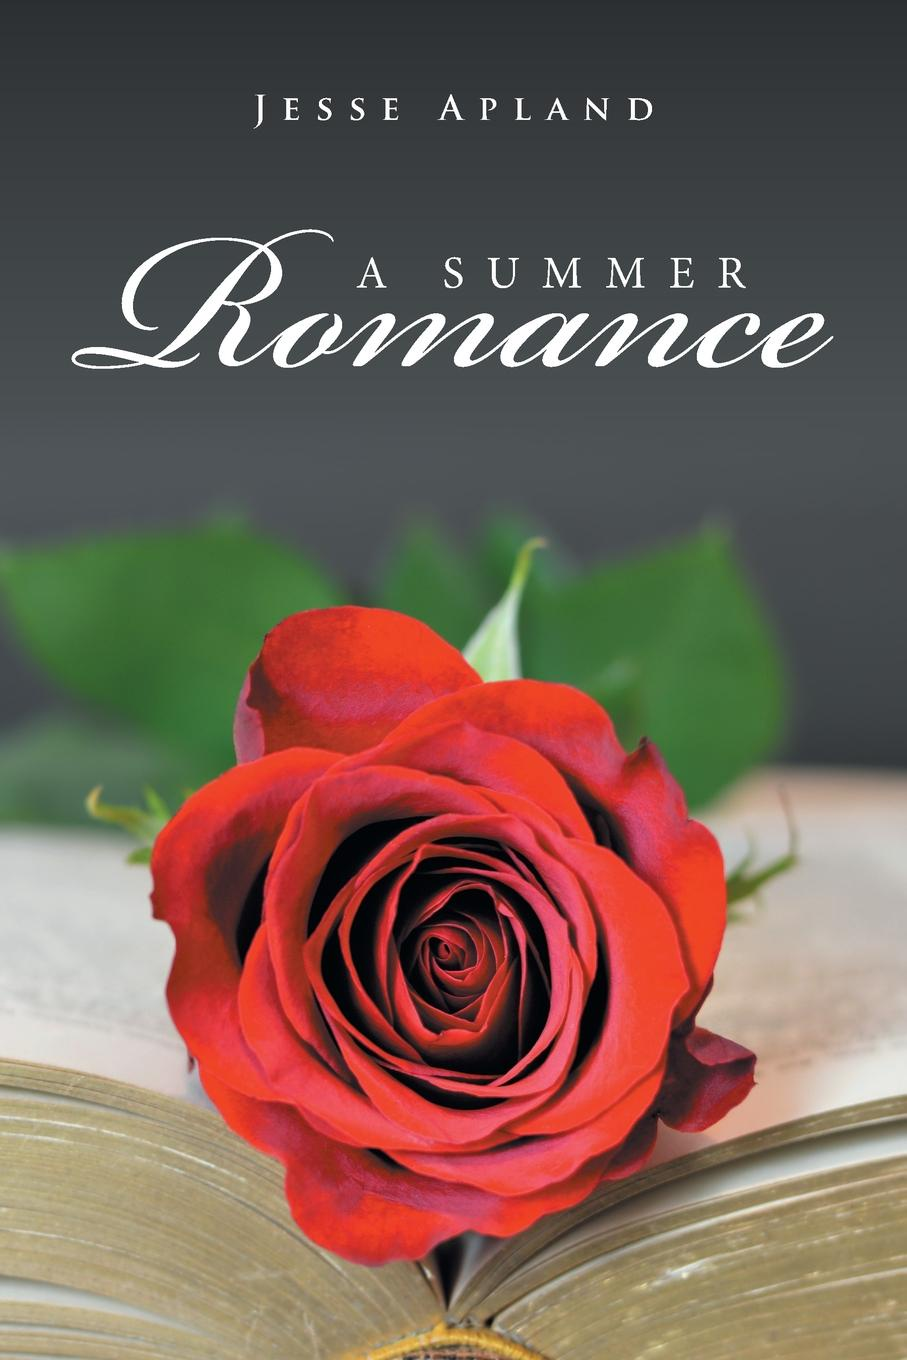 Jesse Apland A Summer Romance a jess ive shenson drs ben and a jess shenson oral history transcript over one hundred years of service to san francisco in medicine music and art 1998